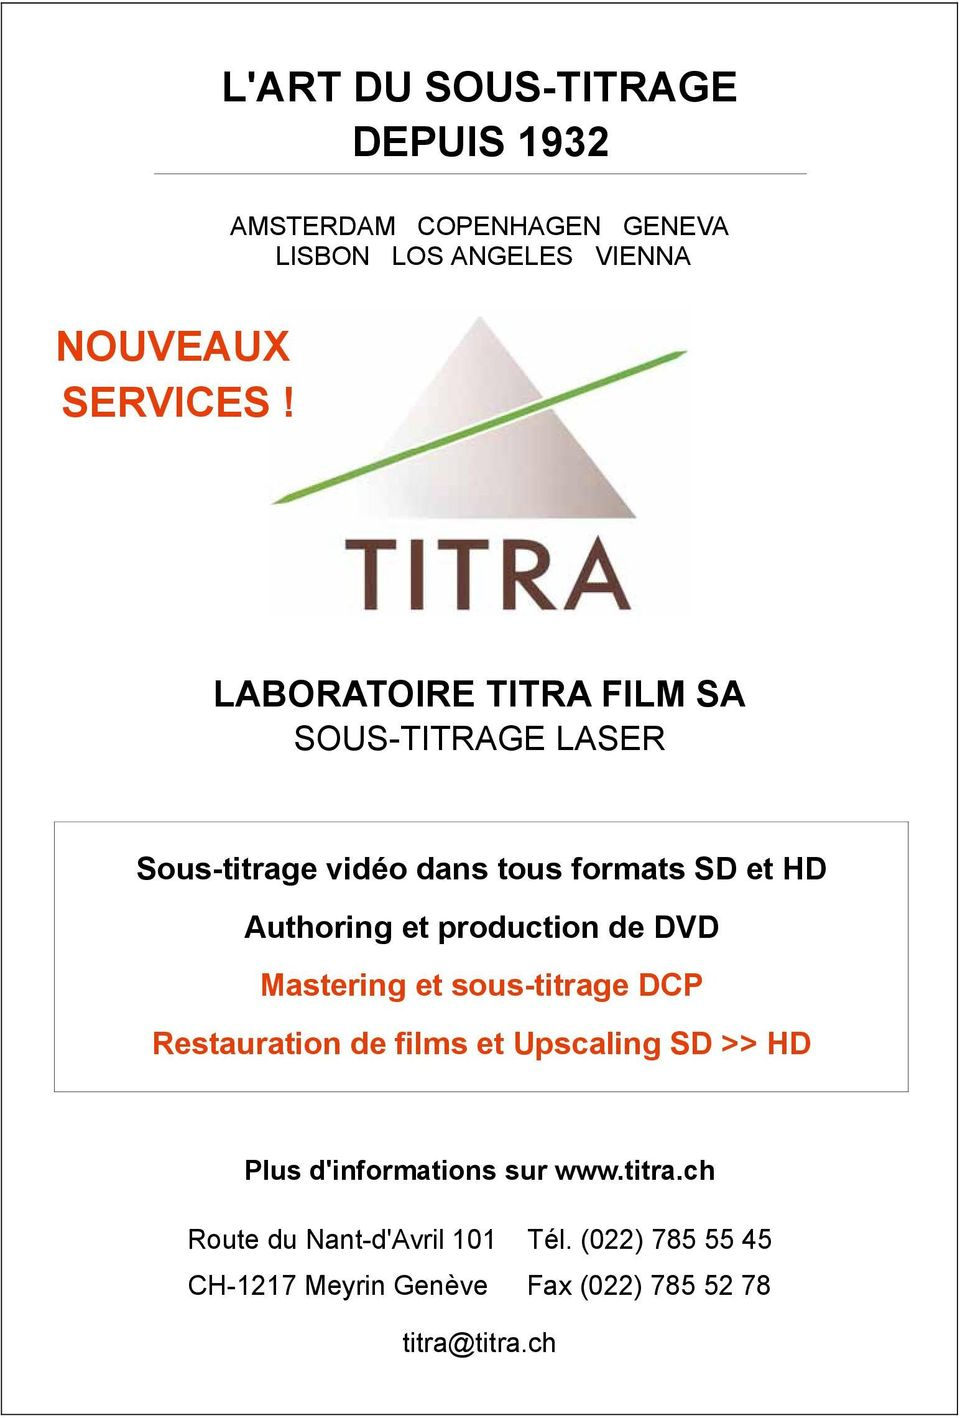 production de DVD Mastering et sous-titrage DCP Restauration de films et Upscaling SD >> HD Plus